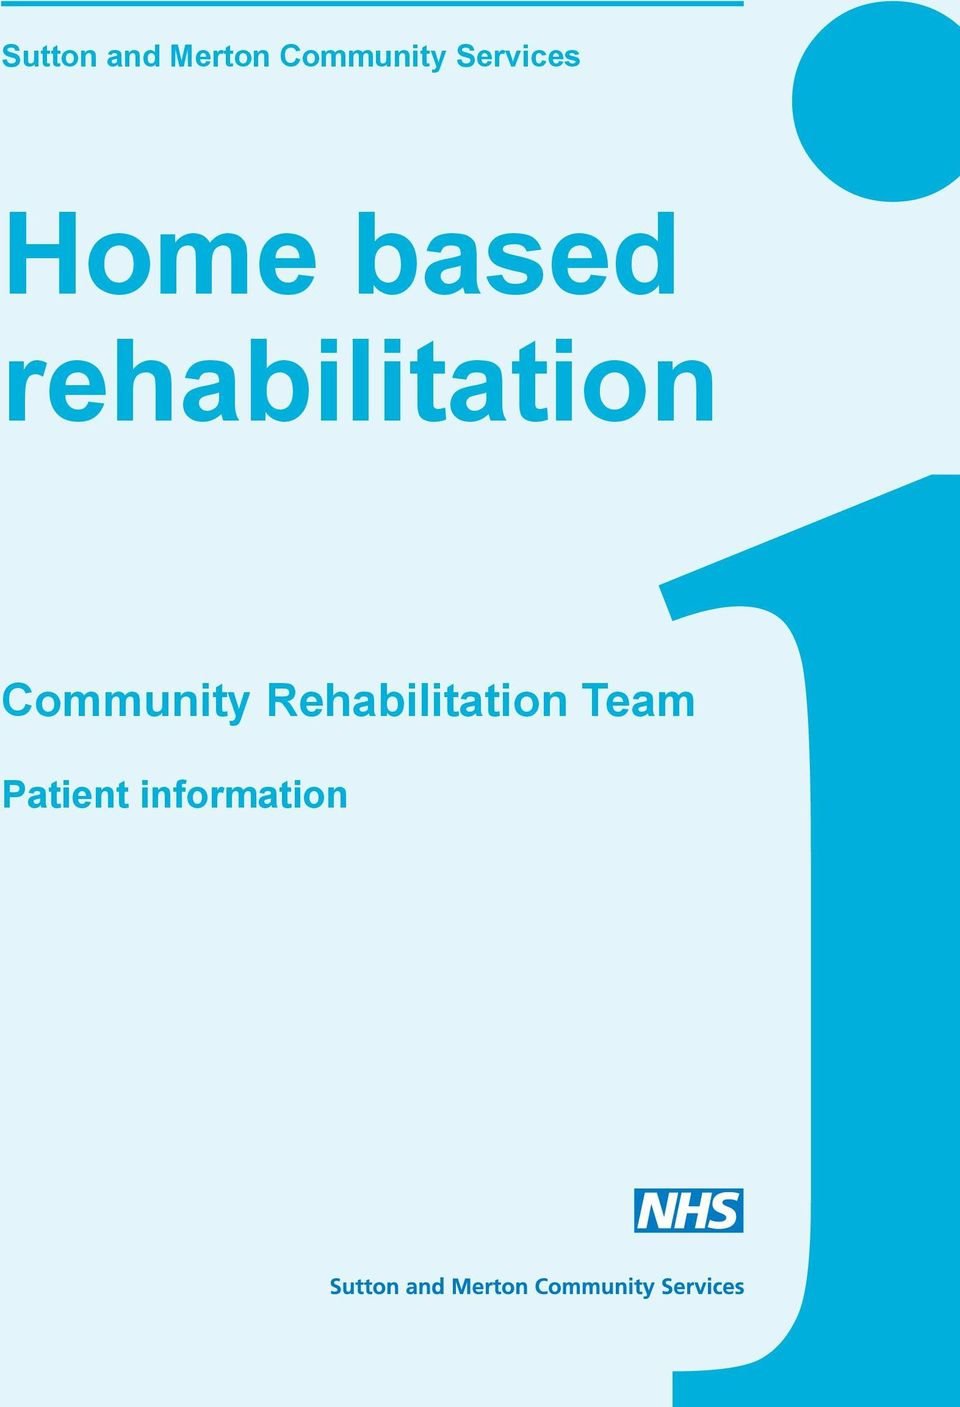 rehabilitation Community